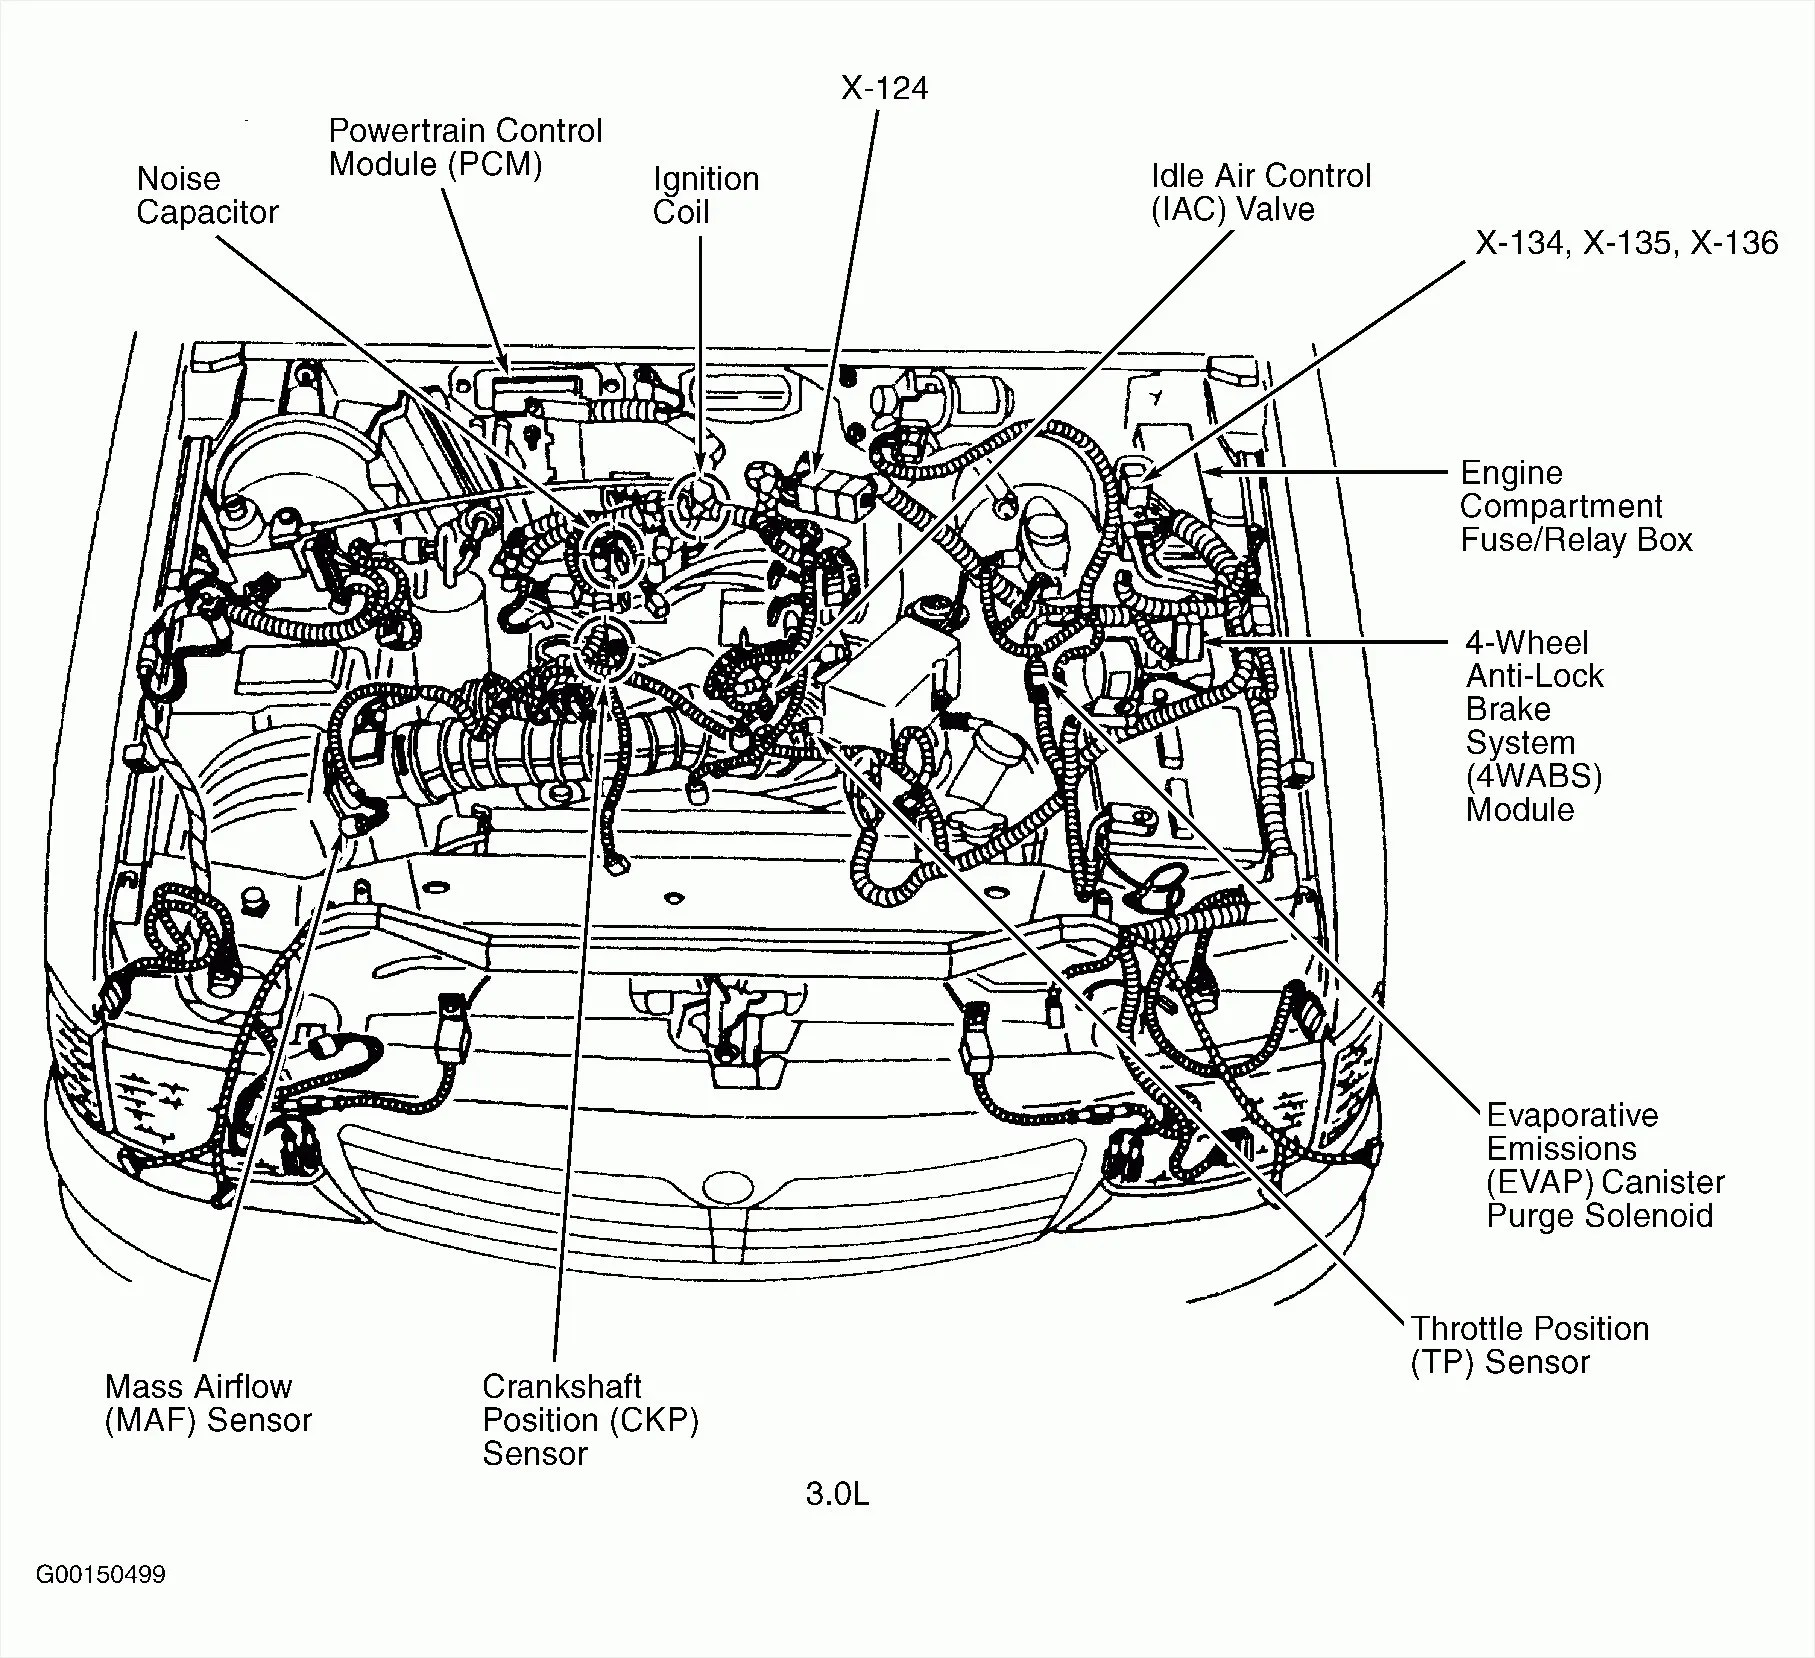 hight resolution of 2003 hyundai accent engine diagram wiring diagram used2000 hyundai engine diagram wiring diagrams konsult 2003 hyundai